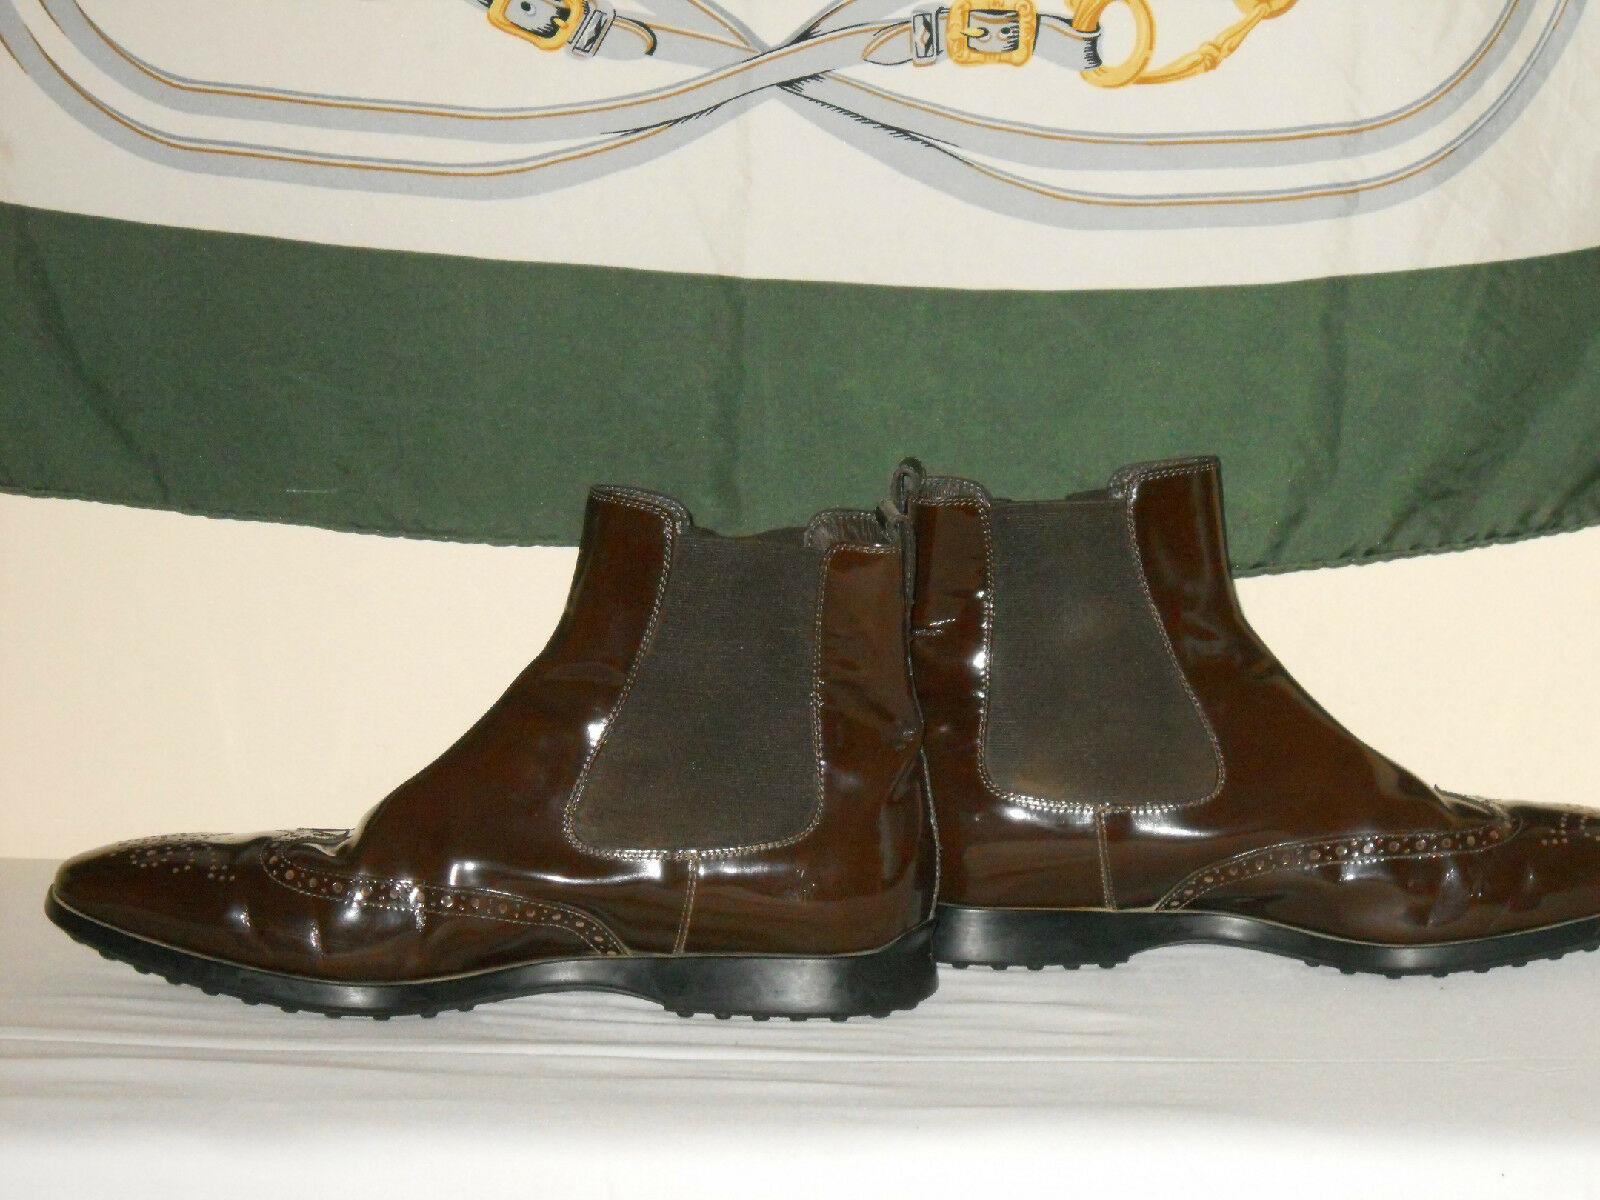 Tods Uomo Uomo Uomo shoes patent leather eurosole 9bbc42